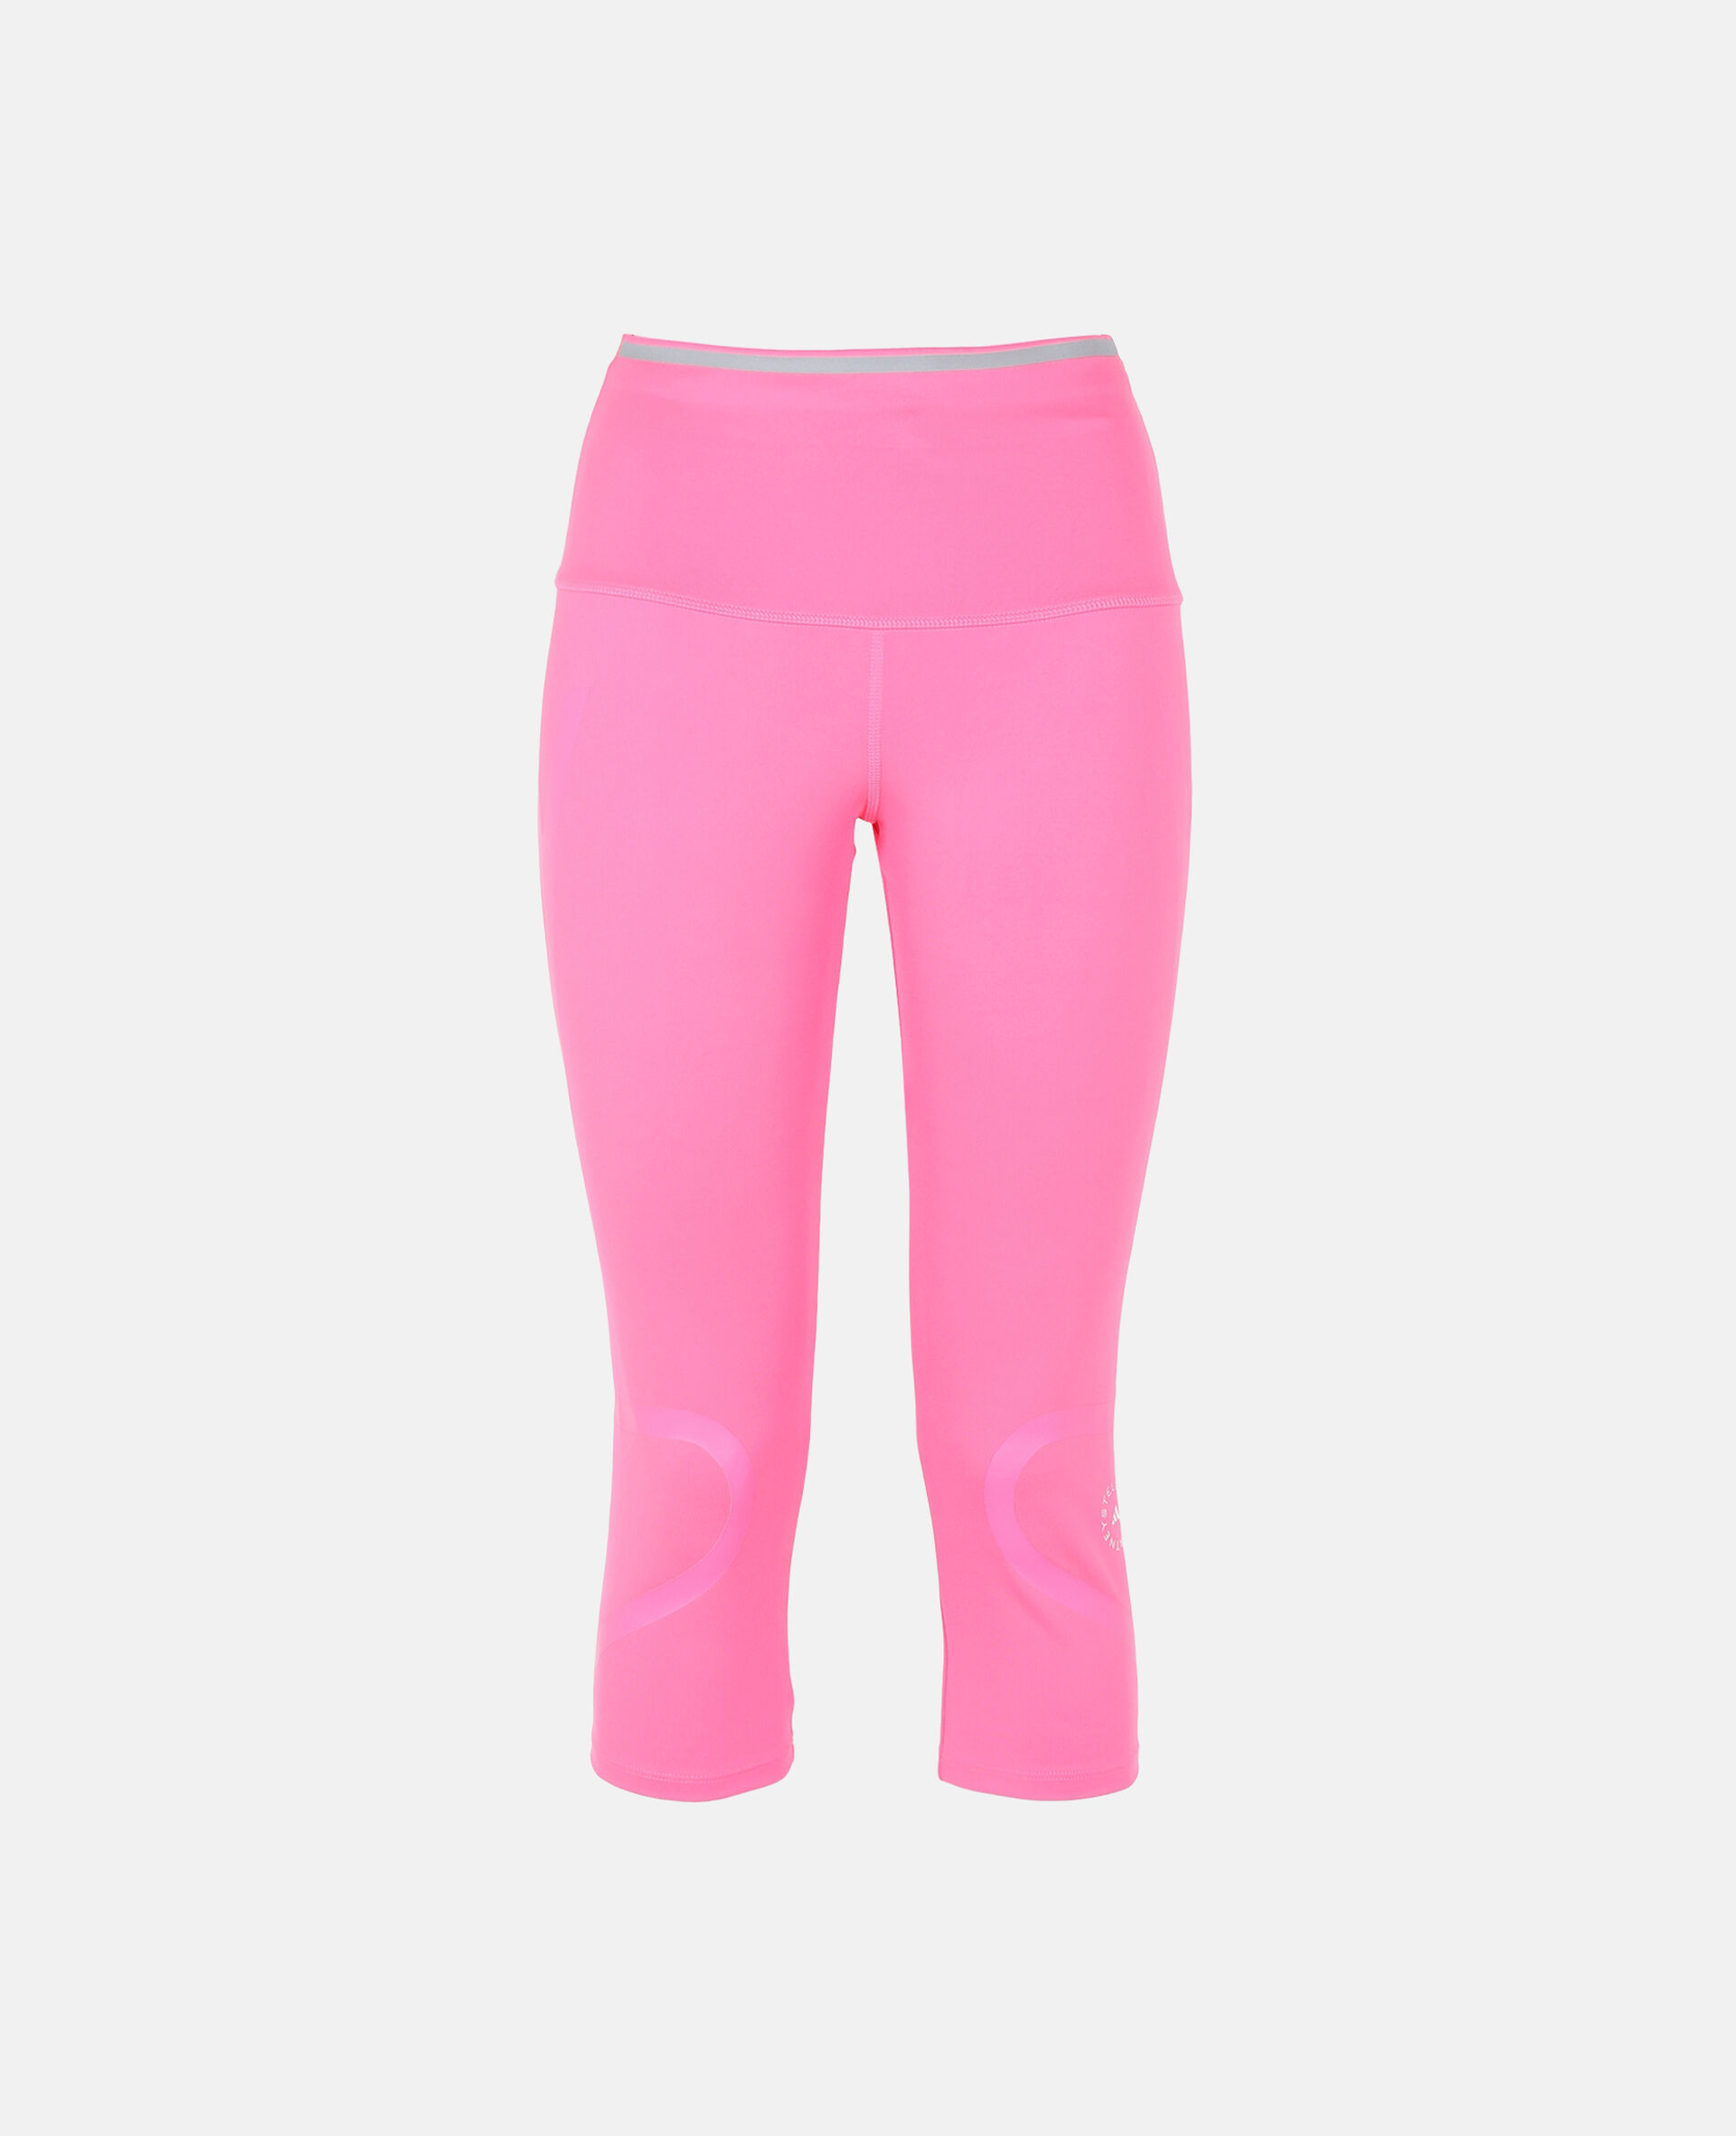 TruePace 3/4 Running Tights-Pink-large image number 0